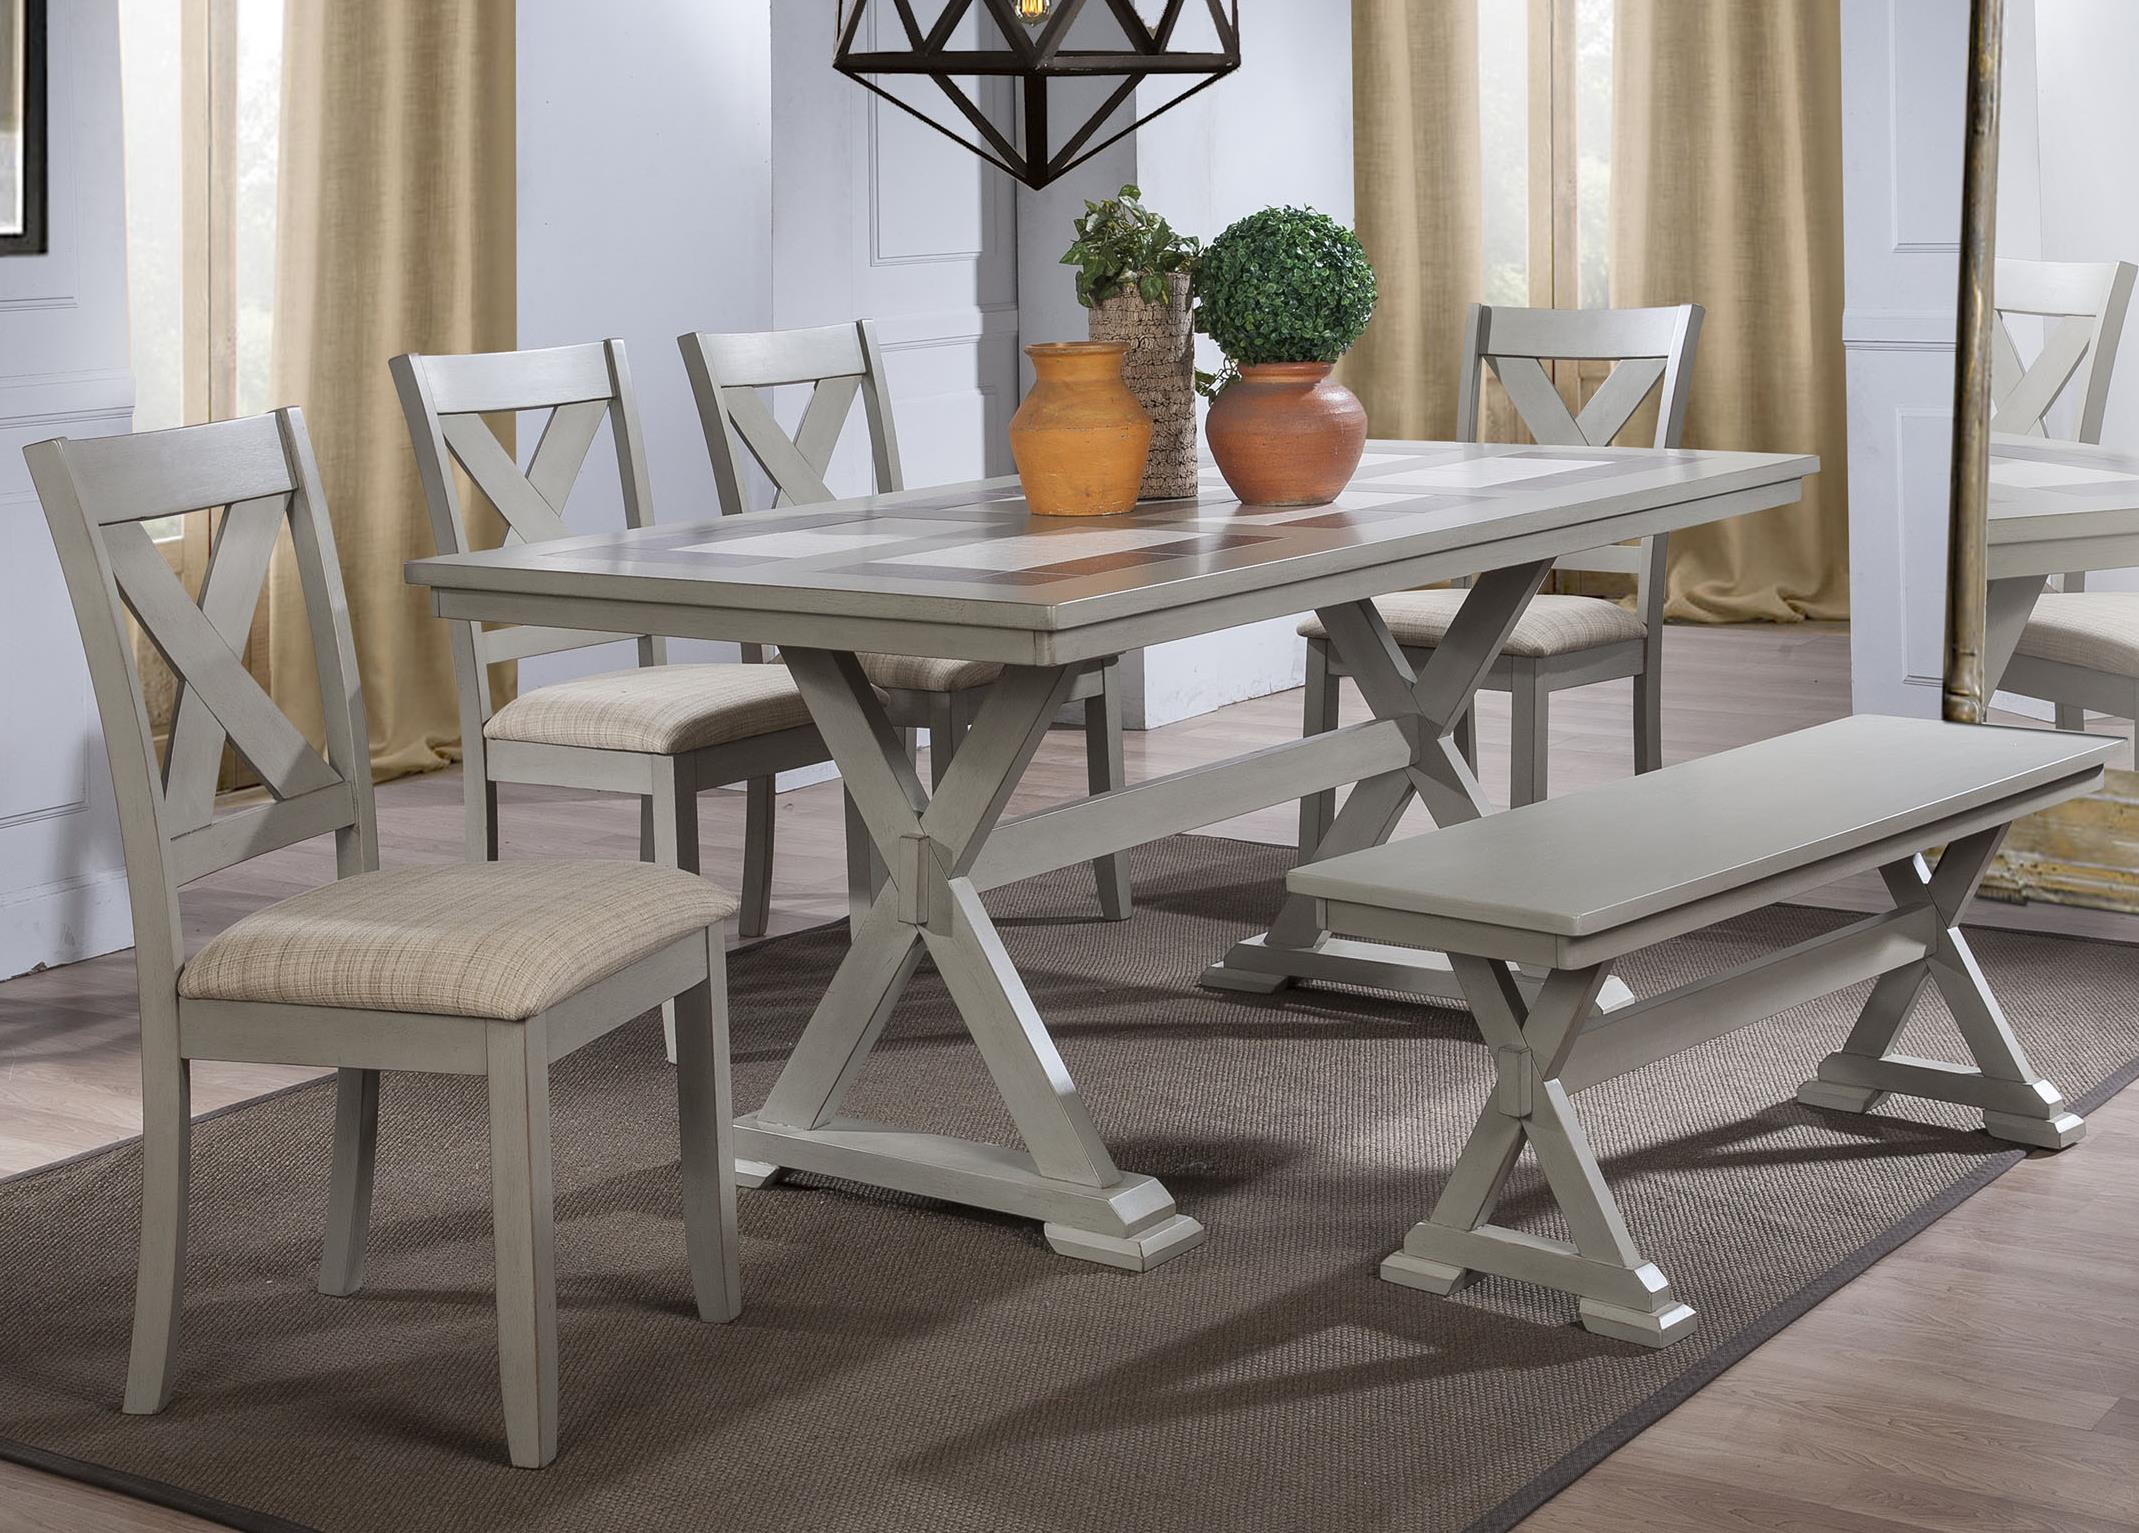 Winners Only Florence 6 Piece Dining Set with Bench - Item Number: DF13672G+4x450SG+455G